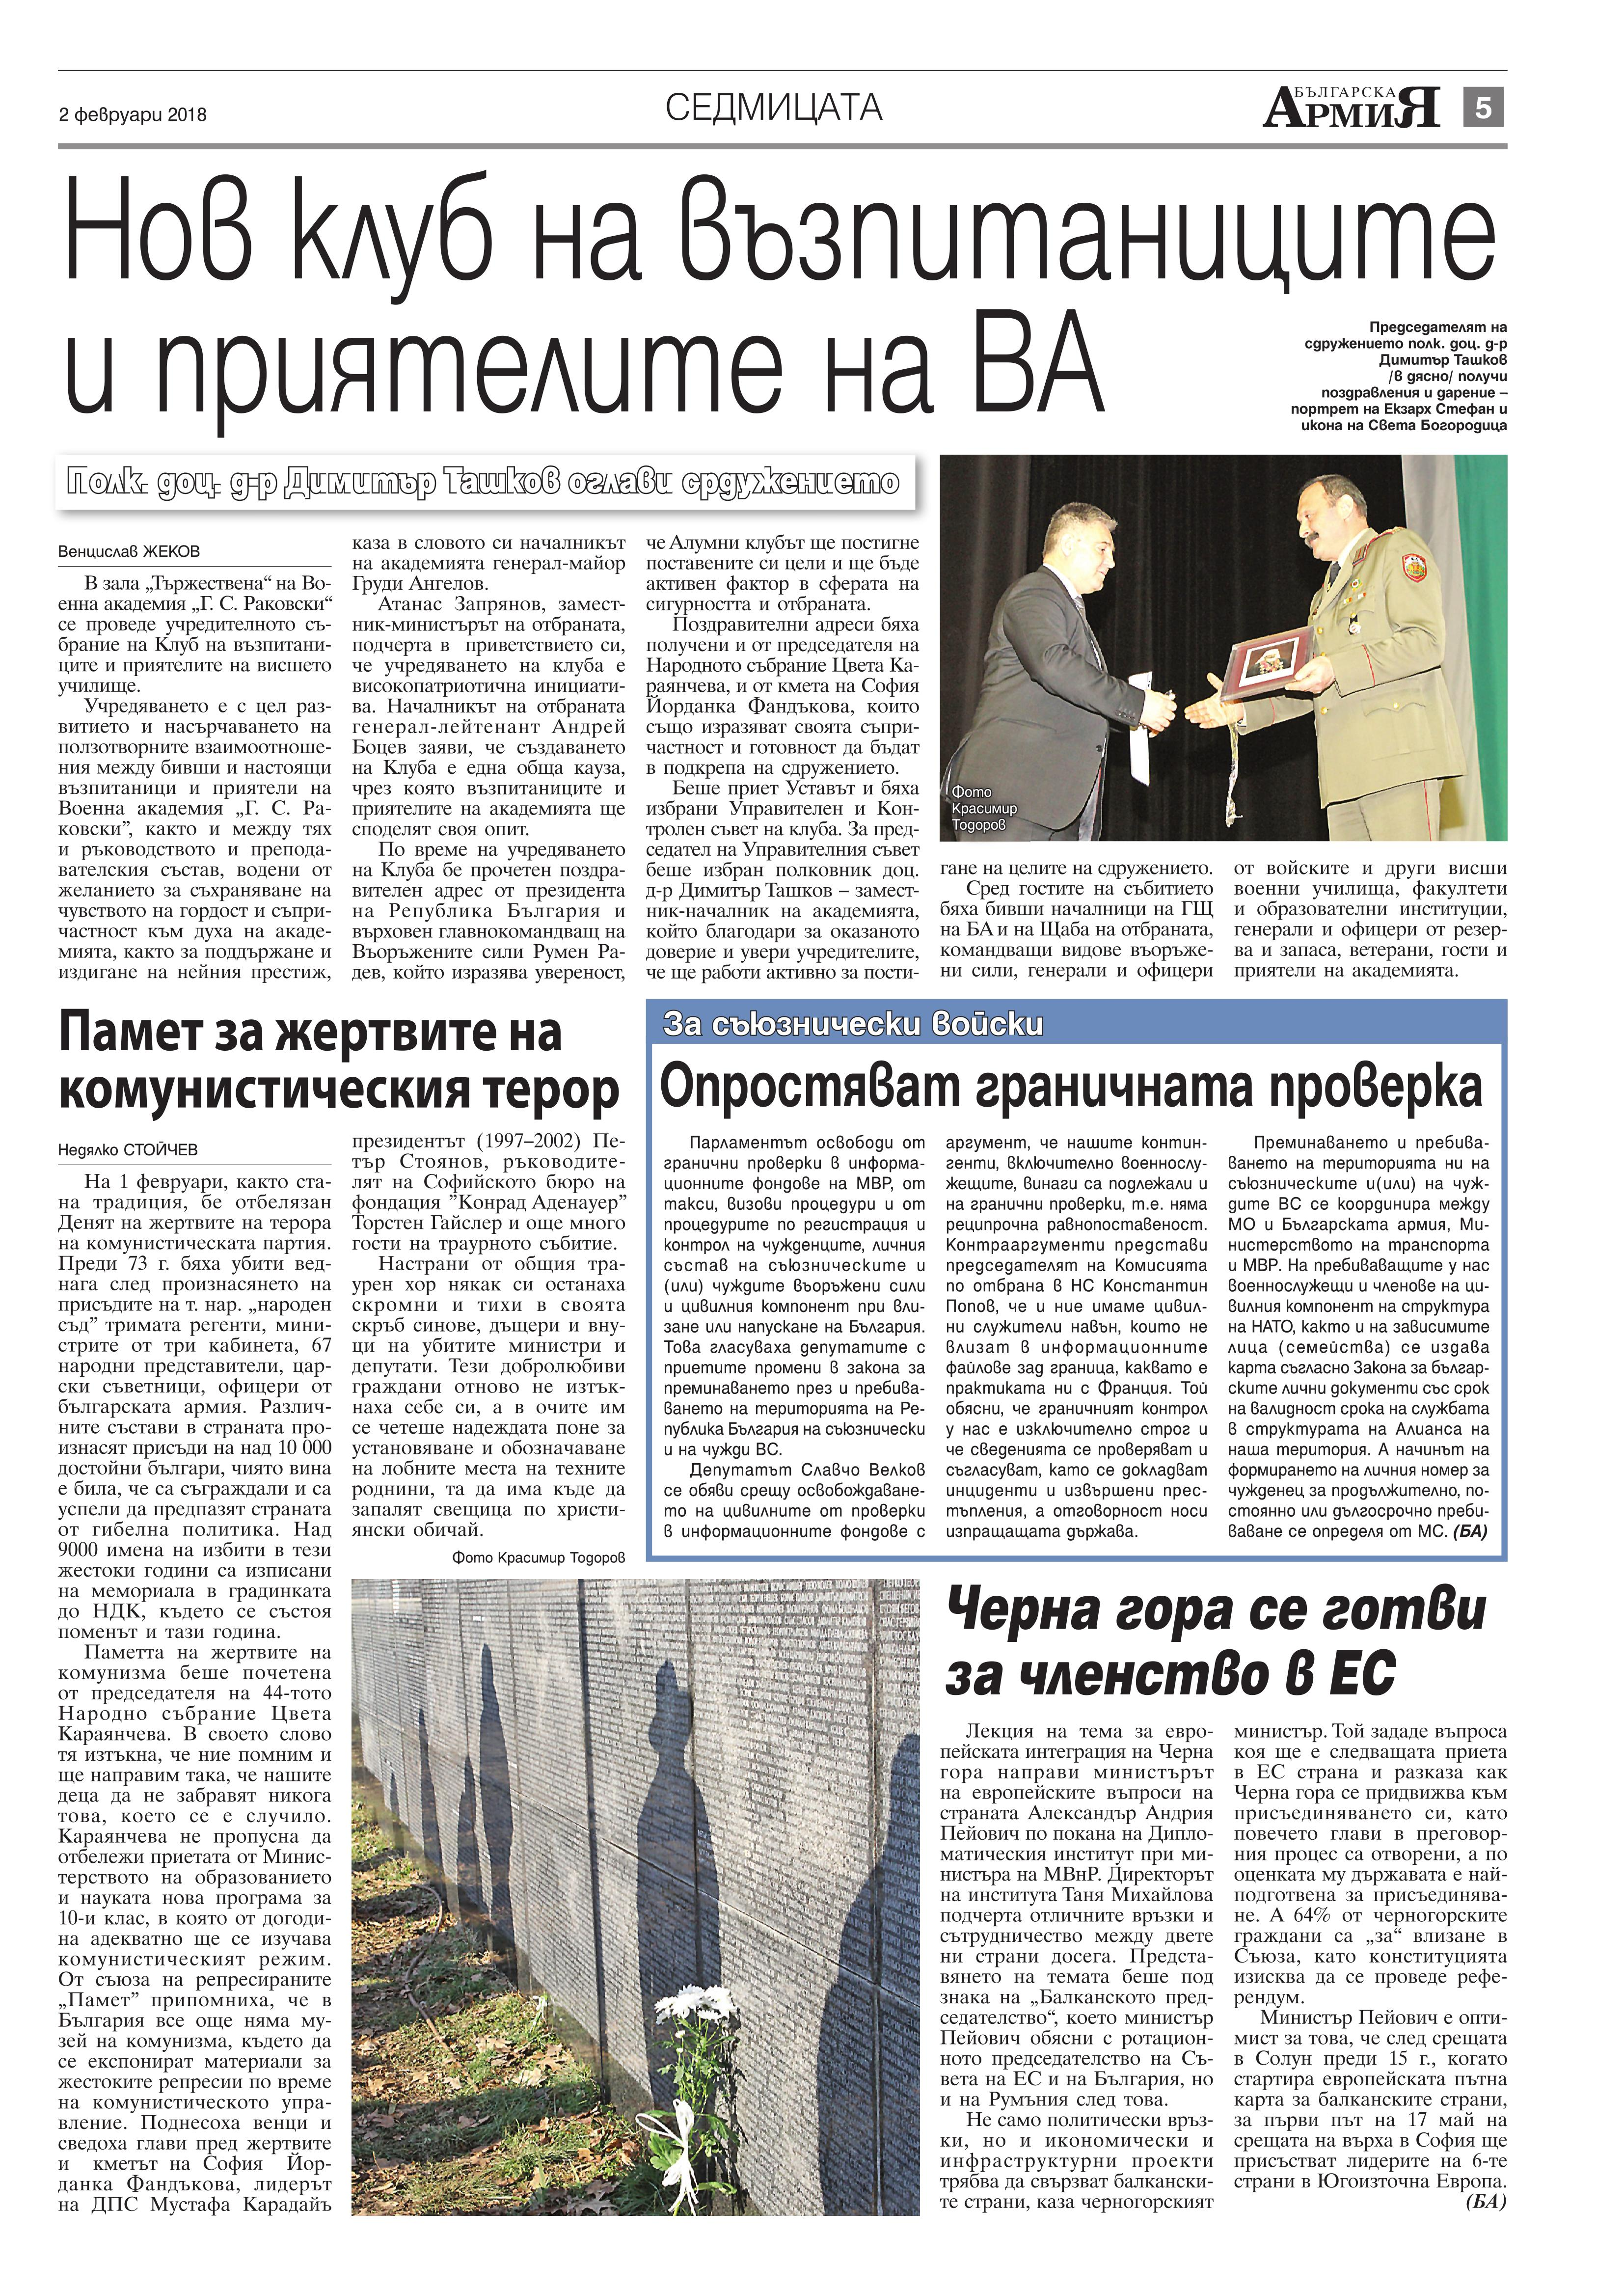 https://armymedia.bg/wp-content/uploads/2015/06/05.page1_-36.jpg